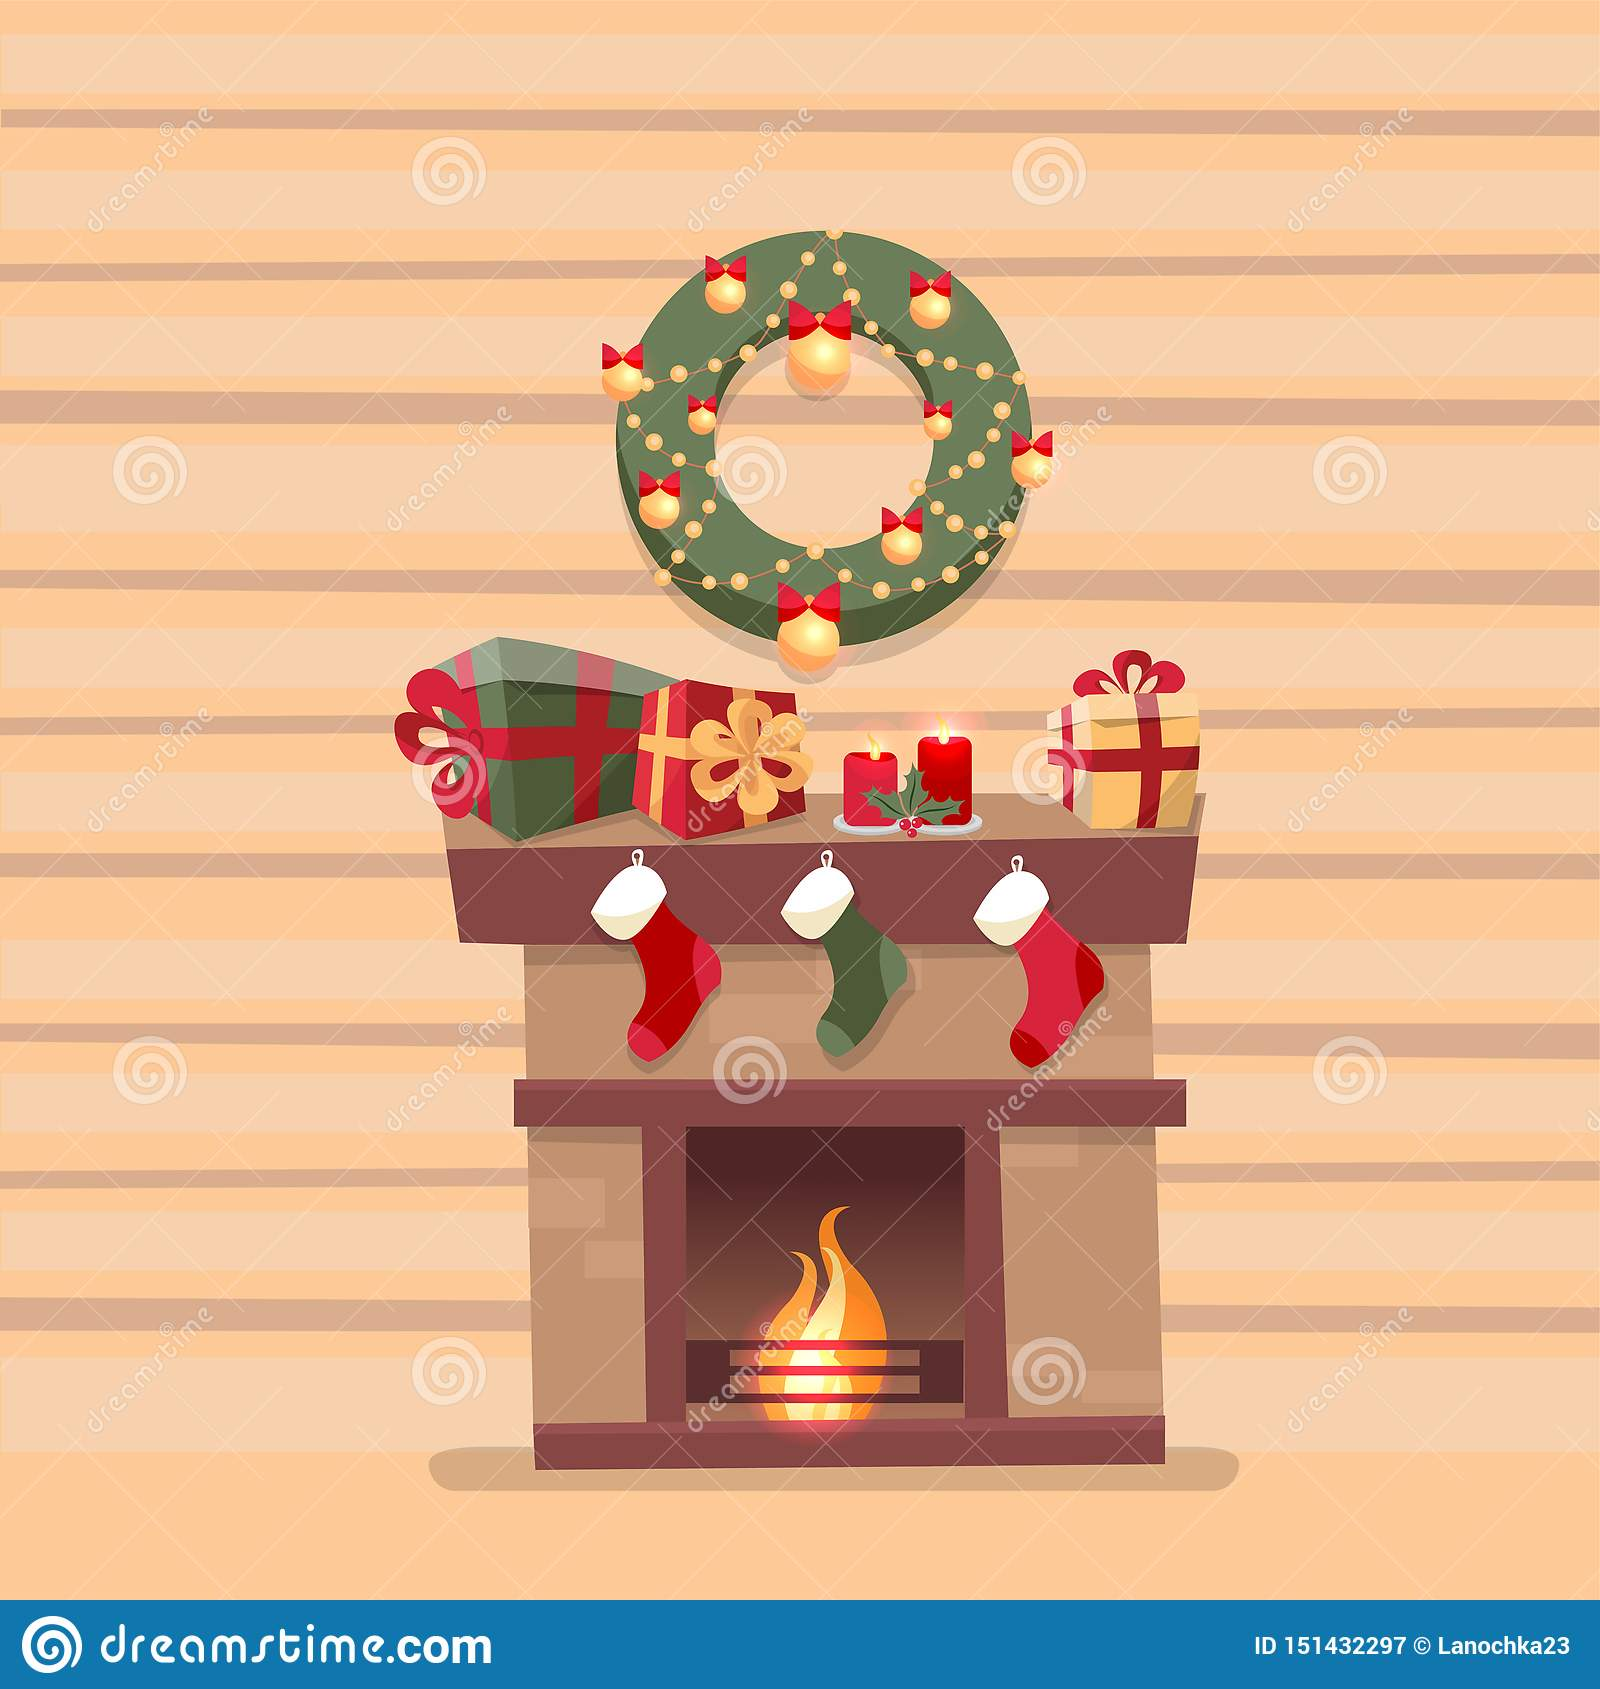 Room interior with Christmas fireplace with socks, decorations, gift boxes, candeles, socks and wreath on background of a wooden